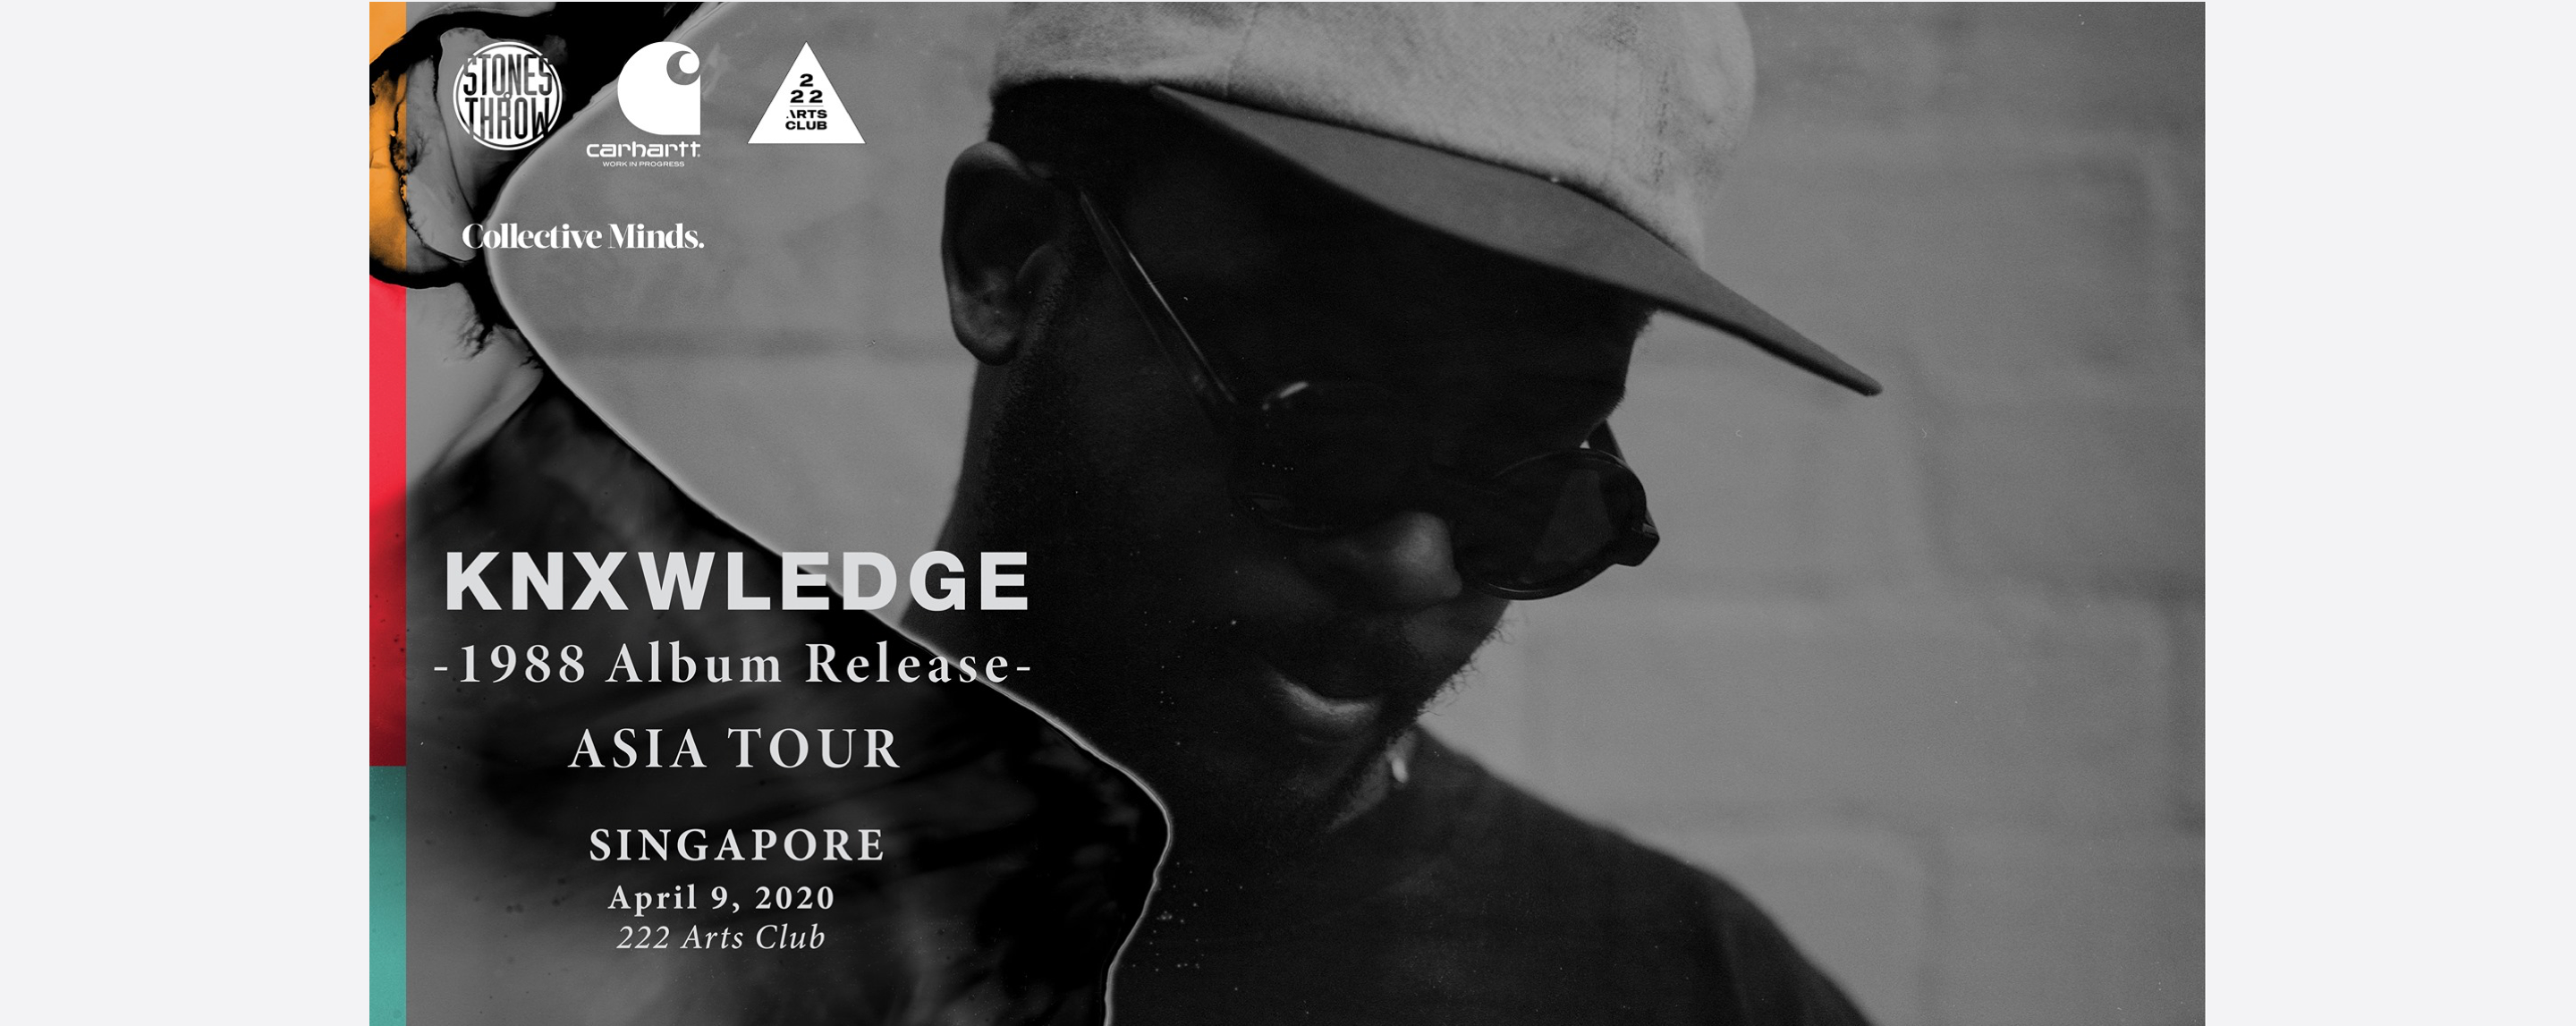 Knxwledge (US) presented by Collective Minds